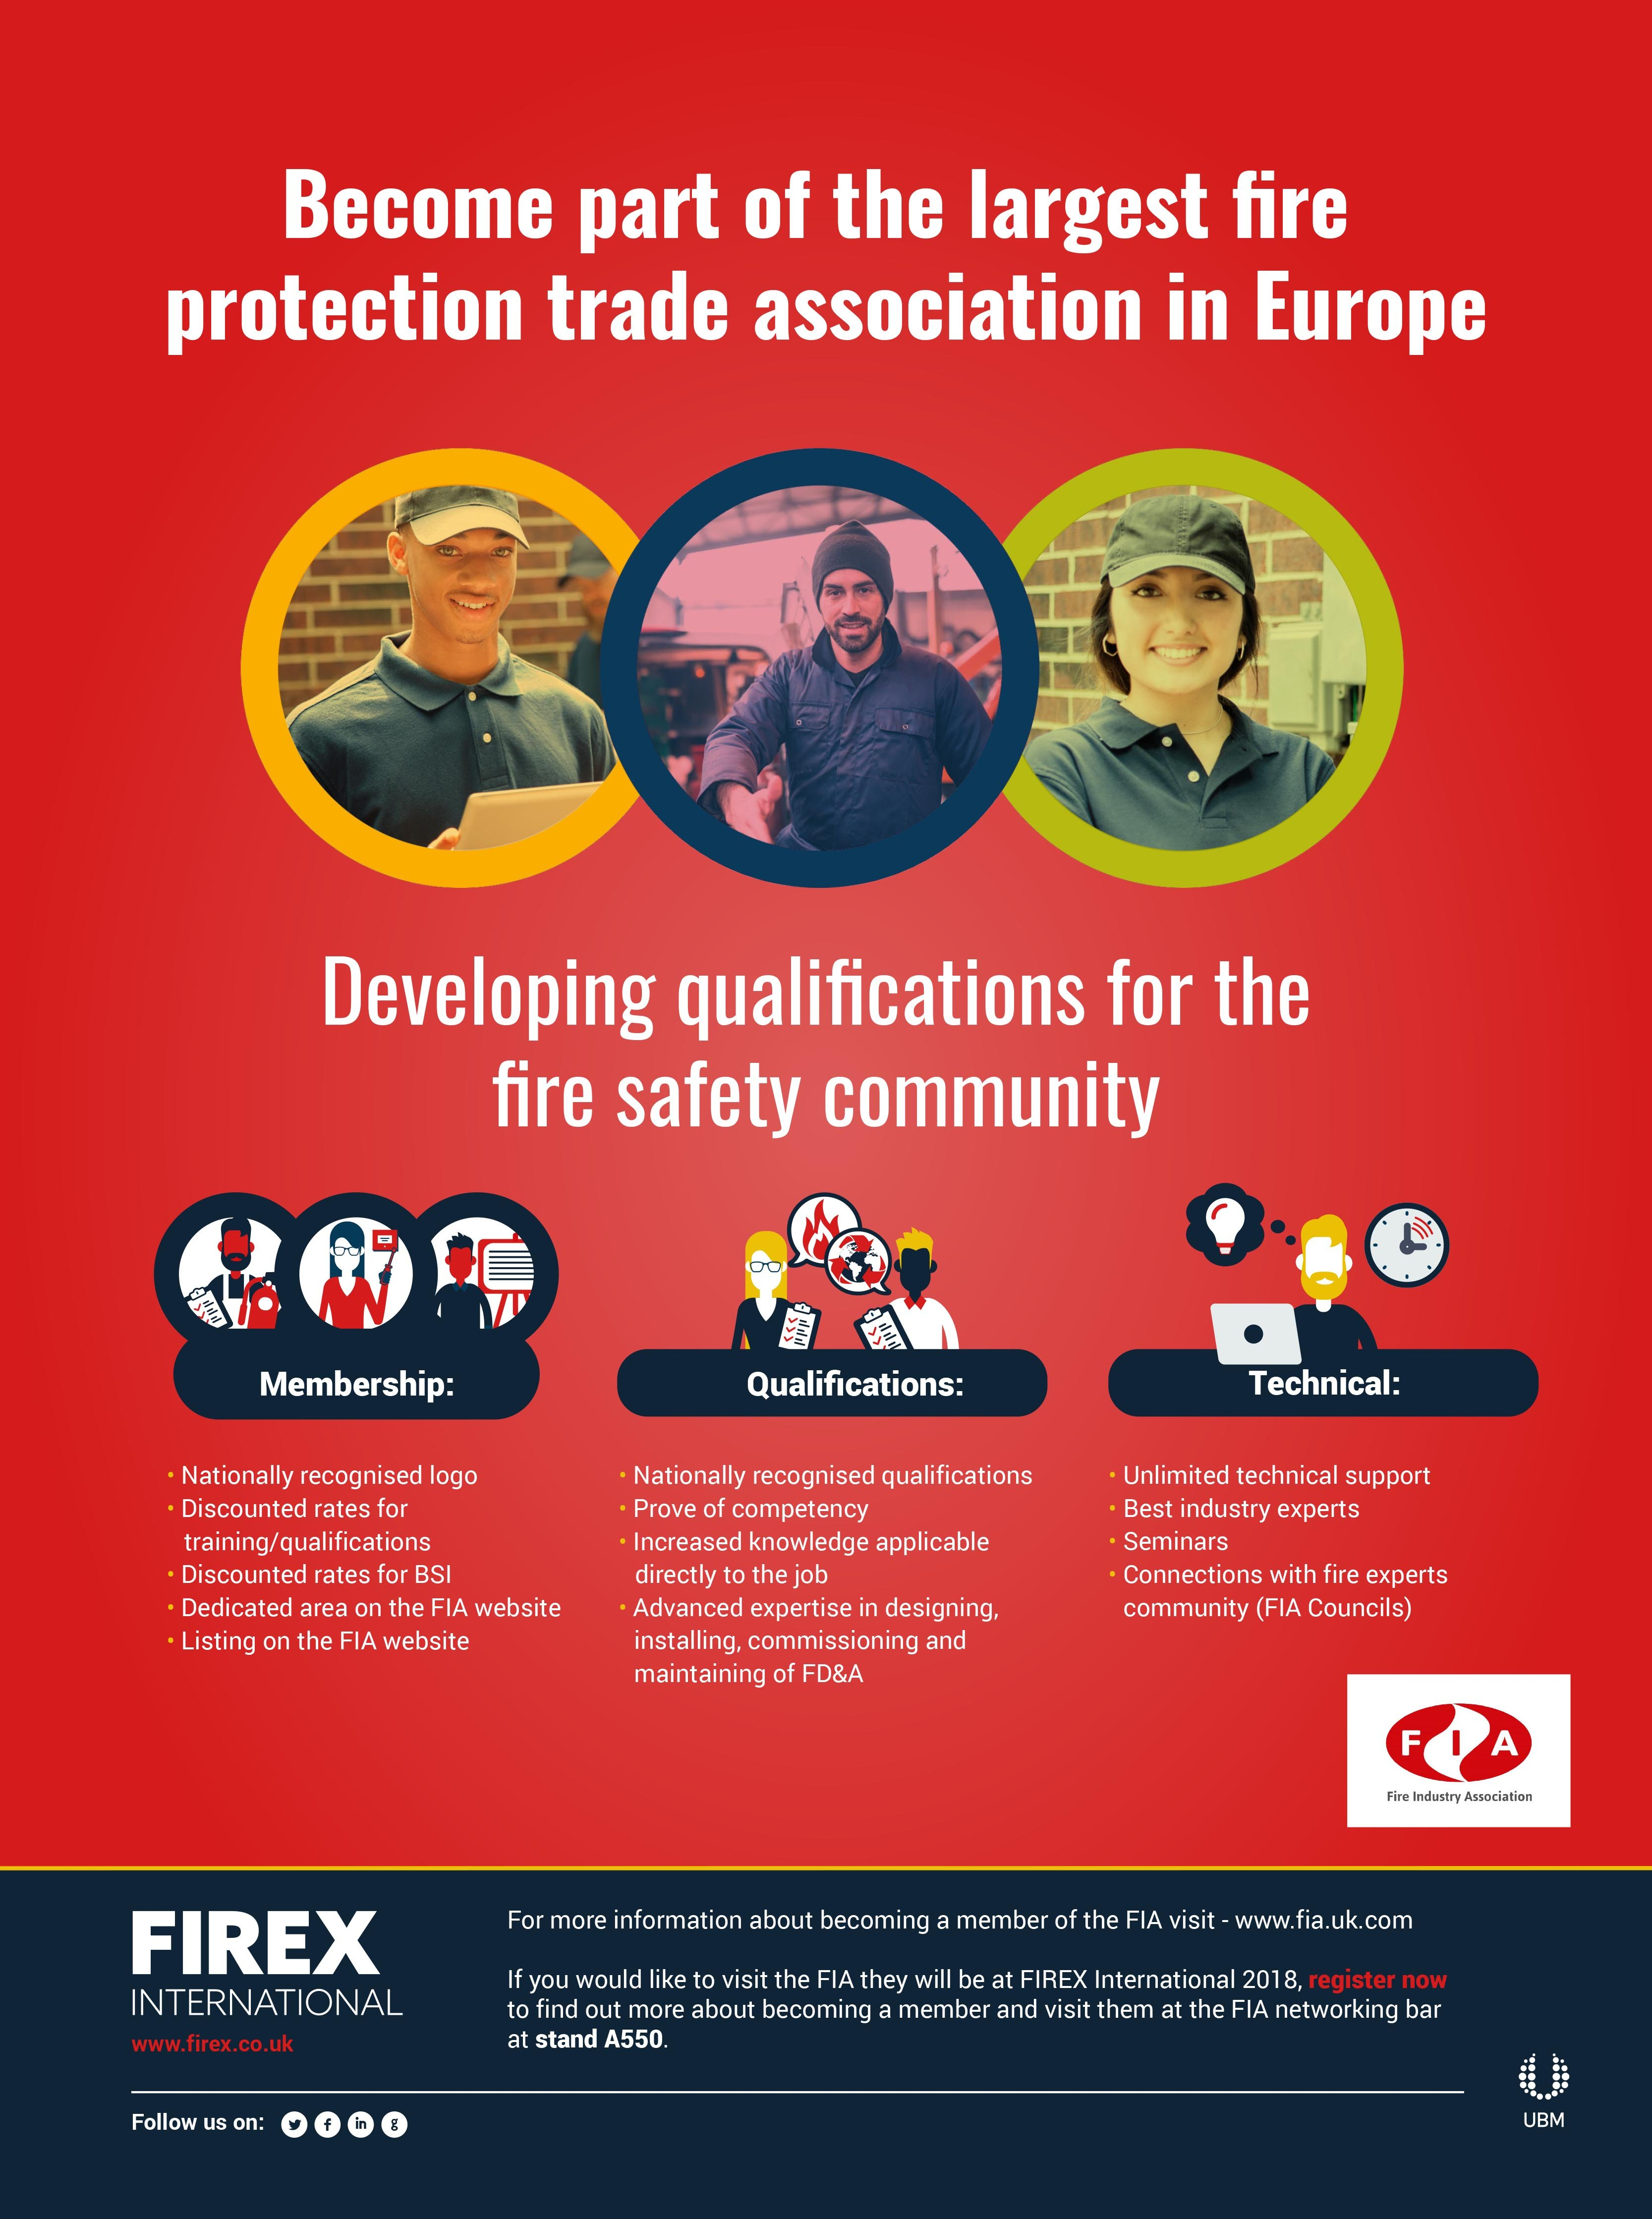 7788-Firex-2018-Infographic-for-FIA-f3dac44169f5cd65df67b8d69a15be5aa463dae2